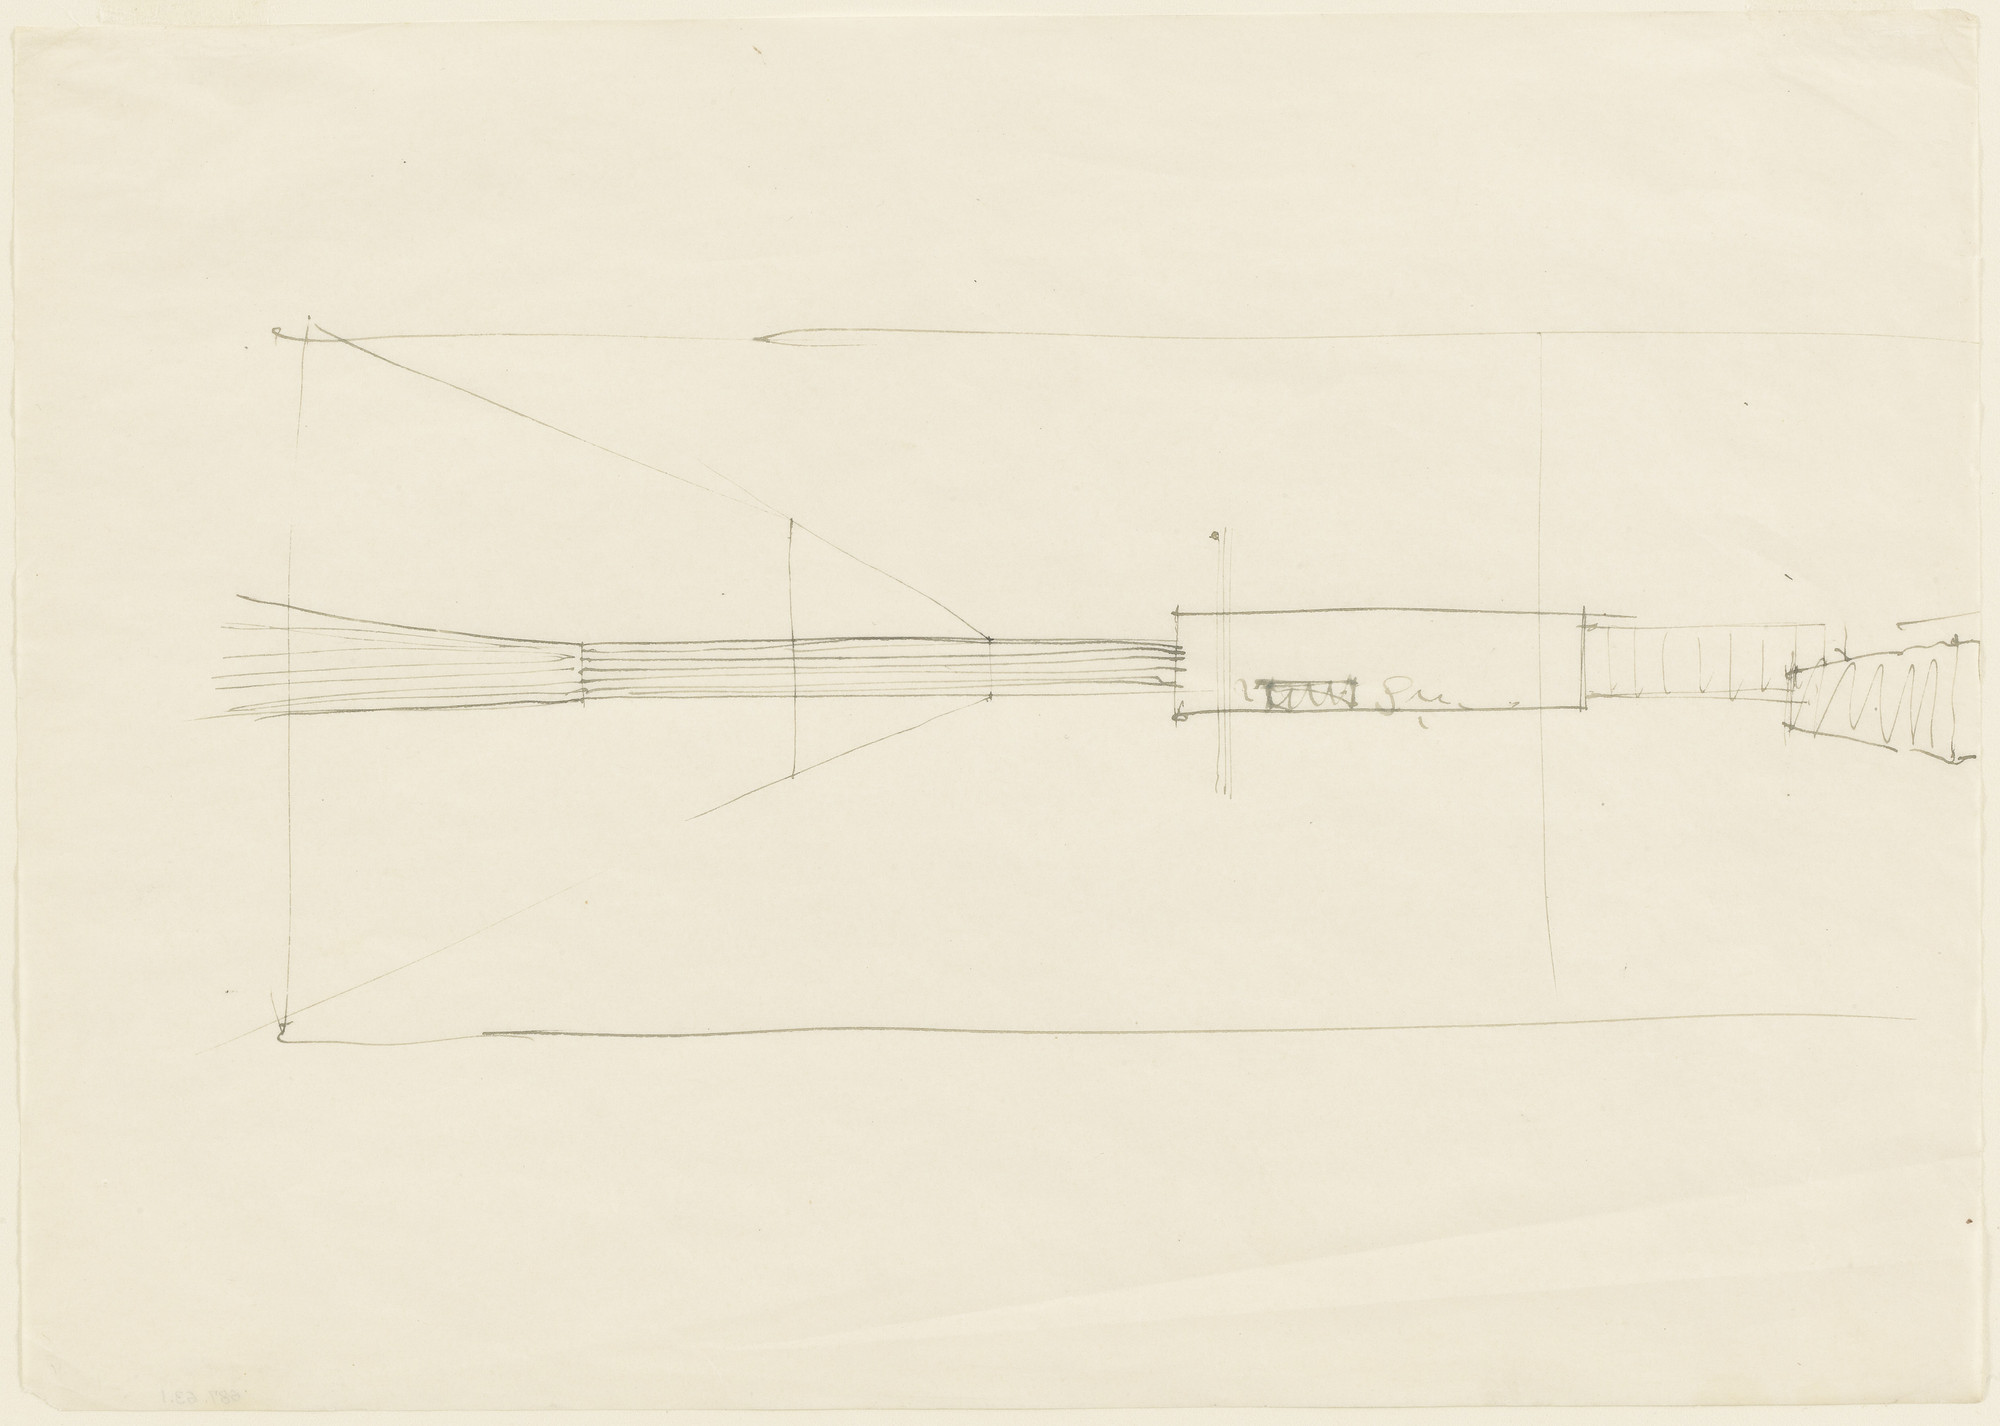 Ludwig Mies van der Rohe. Courthouse Interior:  Perspective Sketch. 1926-36